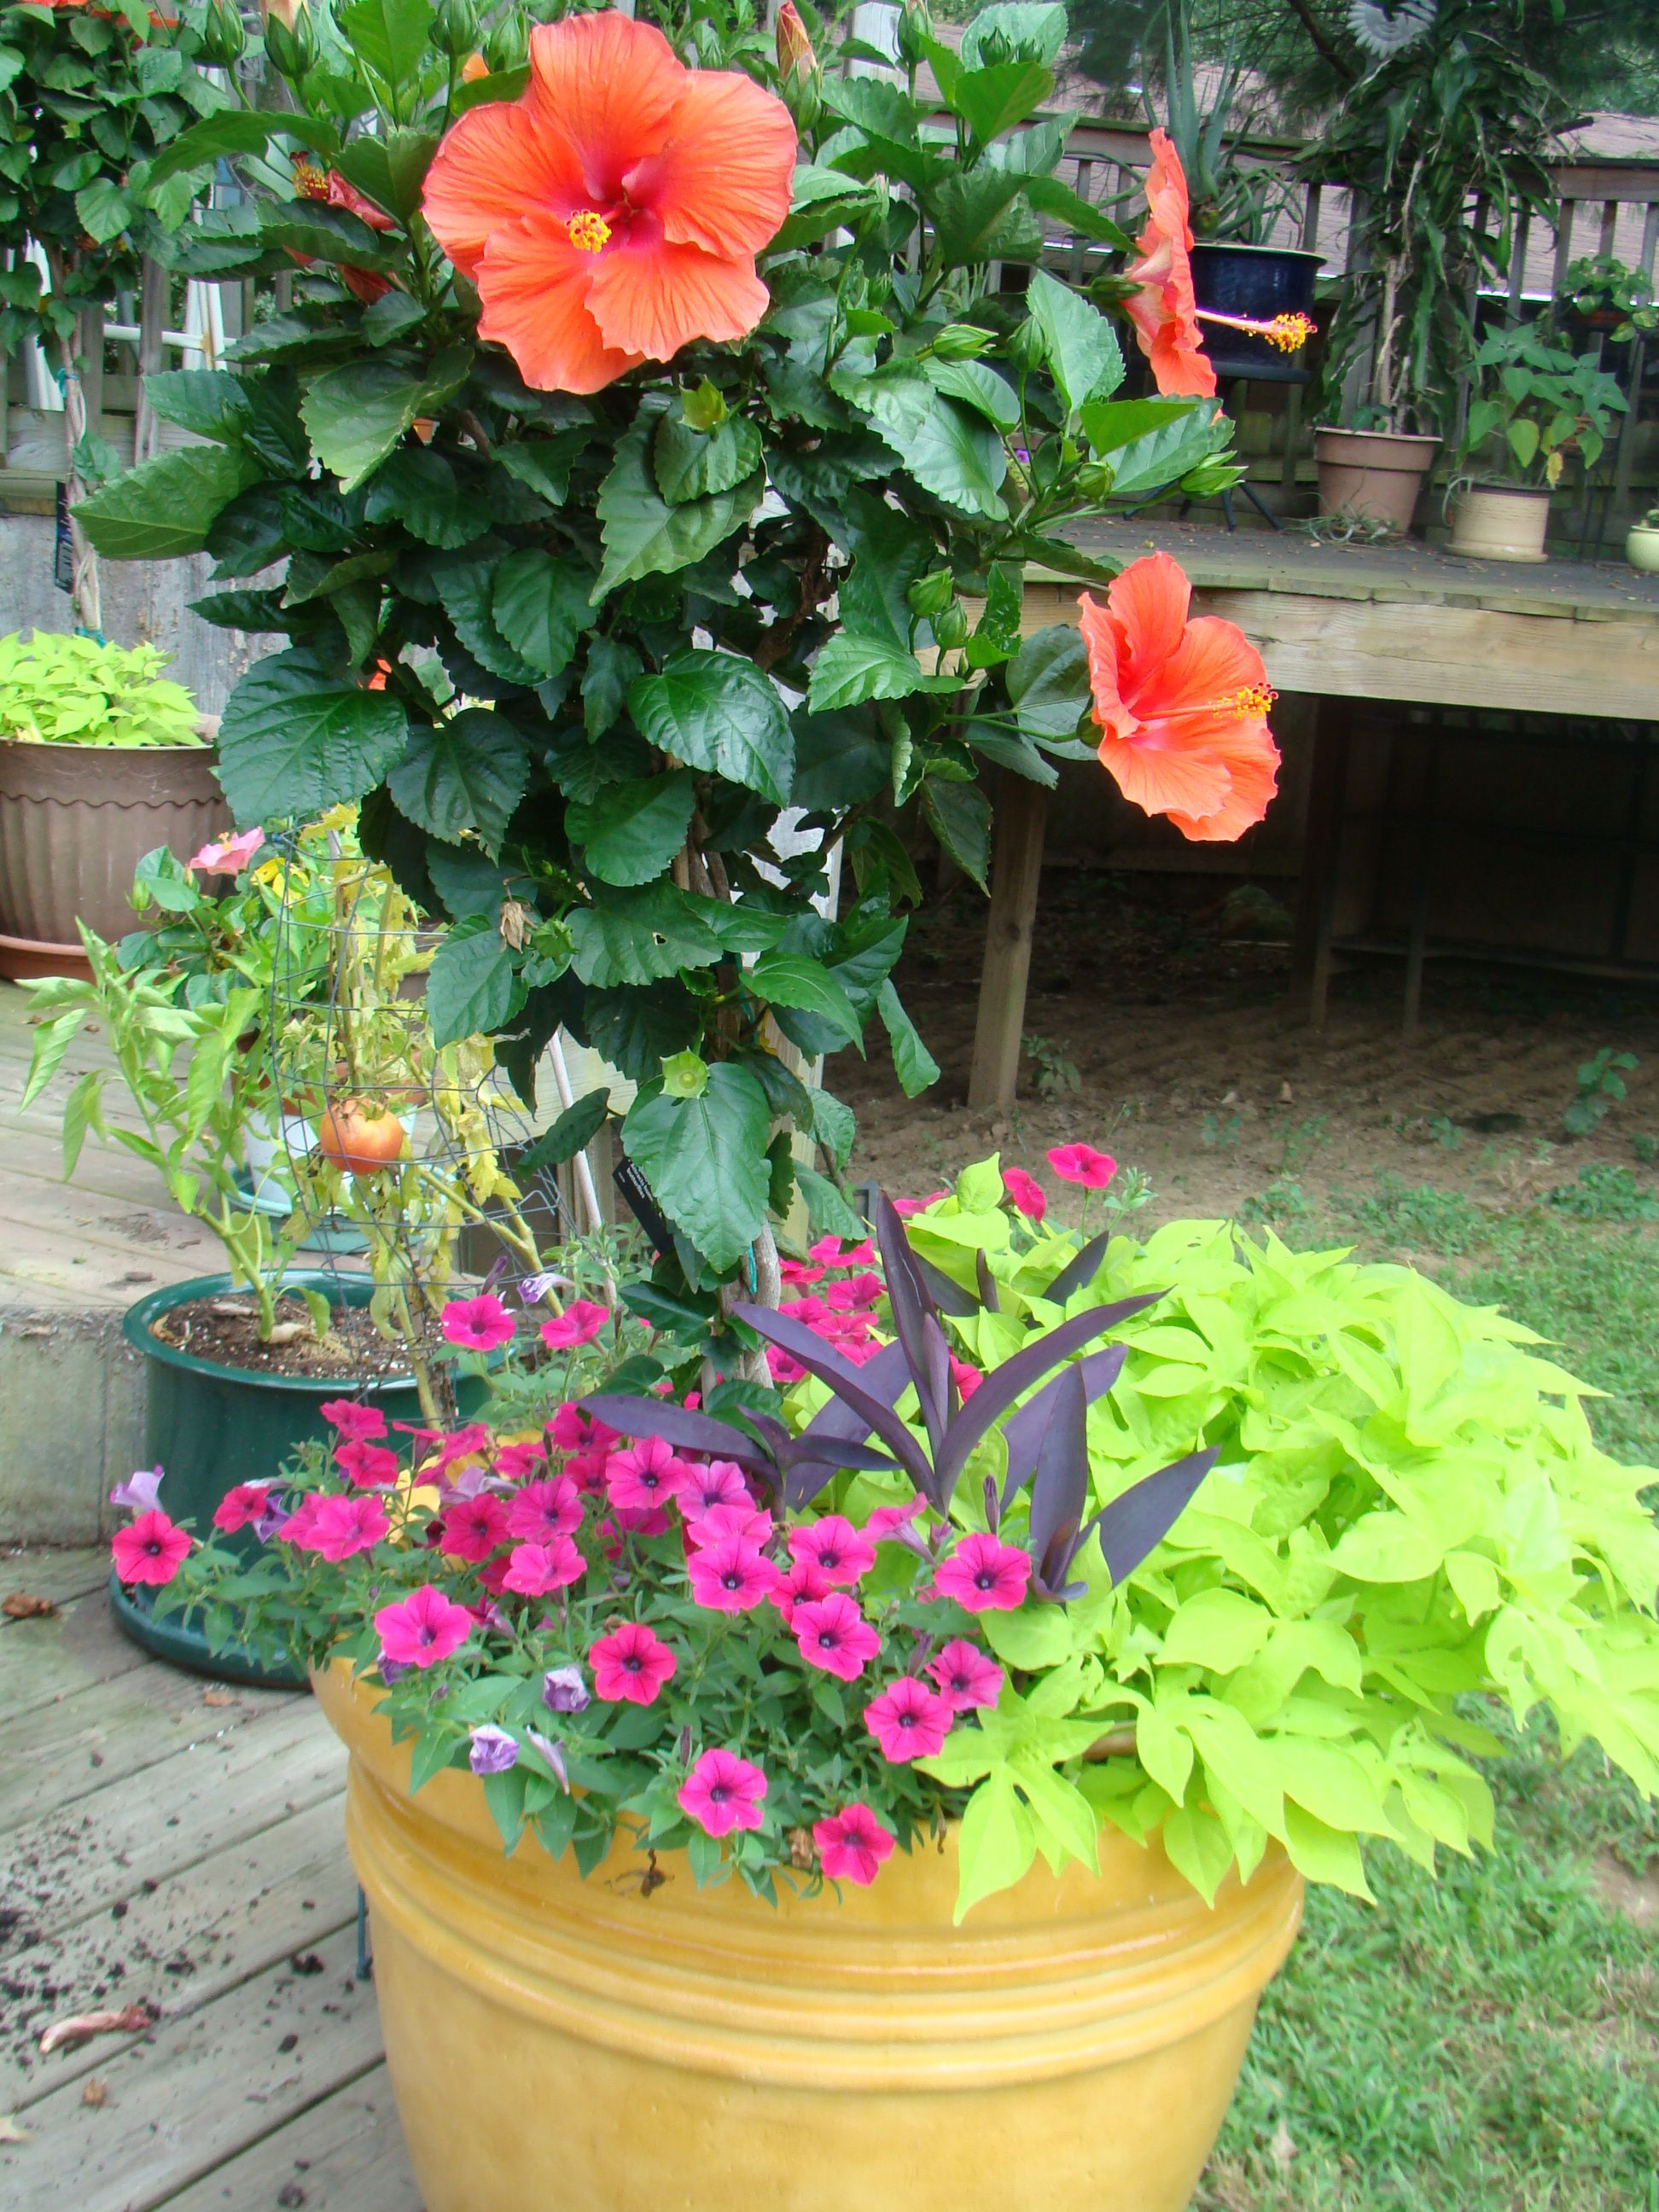 Big Flower Planters Hibiscus With Flower Arrangement In 20 In Planter With